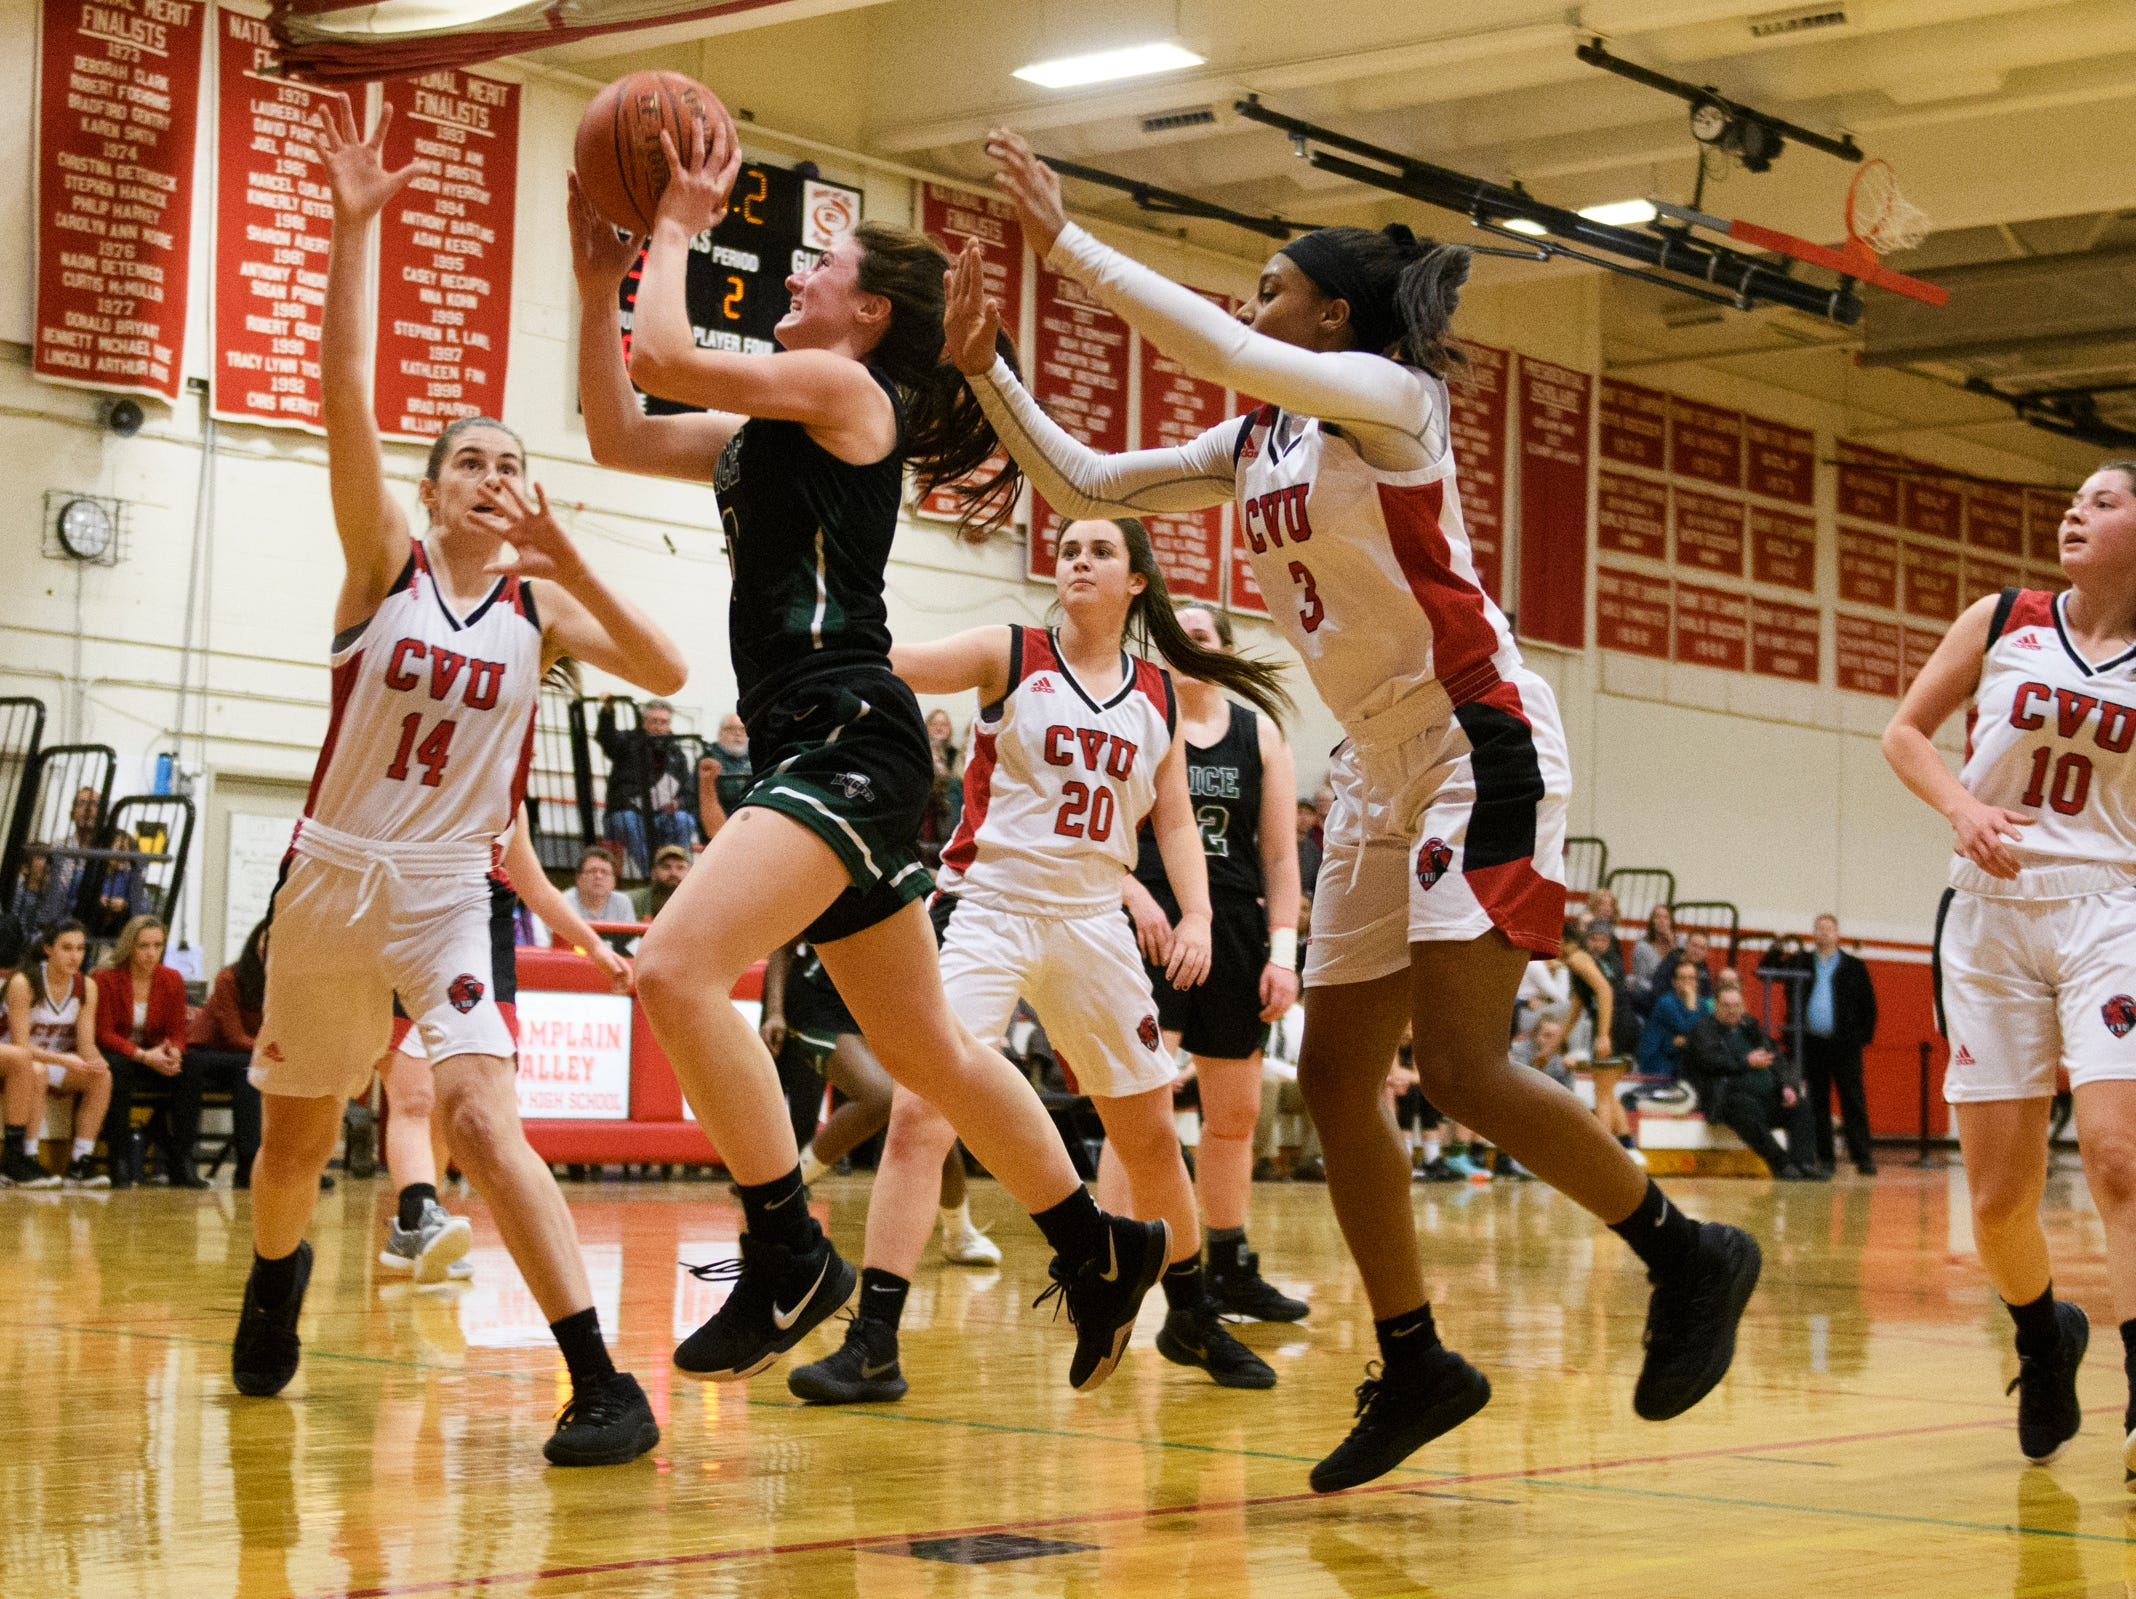 Rice's Kristen Varin (1) leaps for a lay up past CVU's Mekkena Boyd (3) and Julia Blanck (14) during high school girls basketball game between the Rice Green Knights and the Champlain Valley Union Redhawks at CVU High School on Friday night January 11, 2019 in Hinesburg.